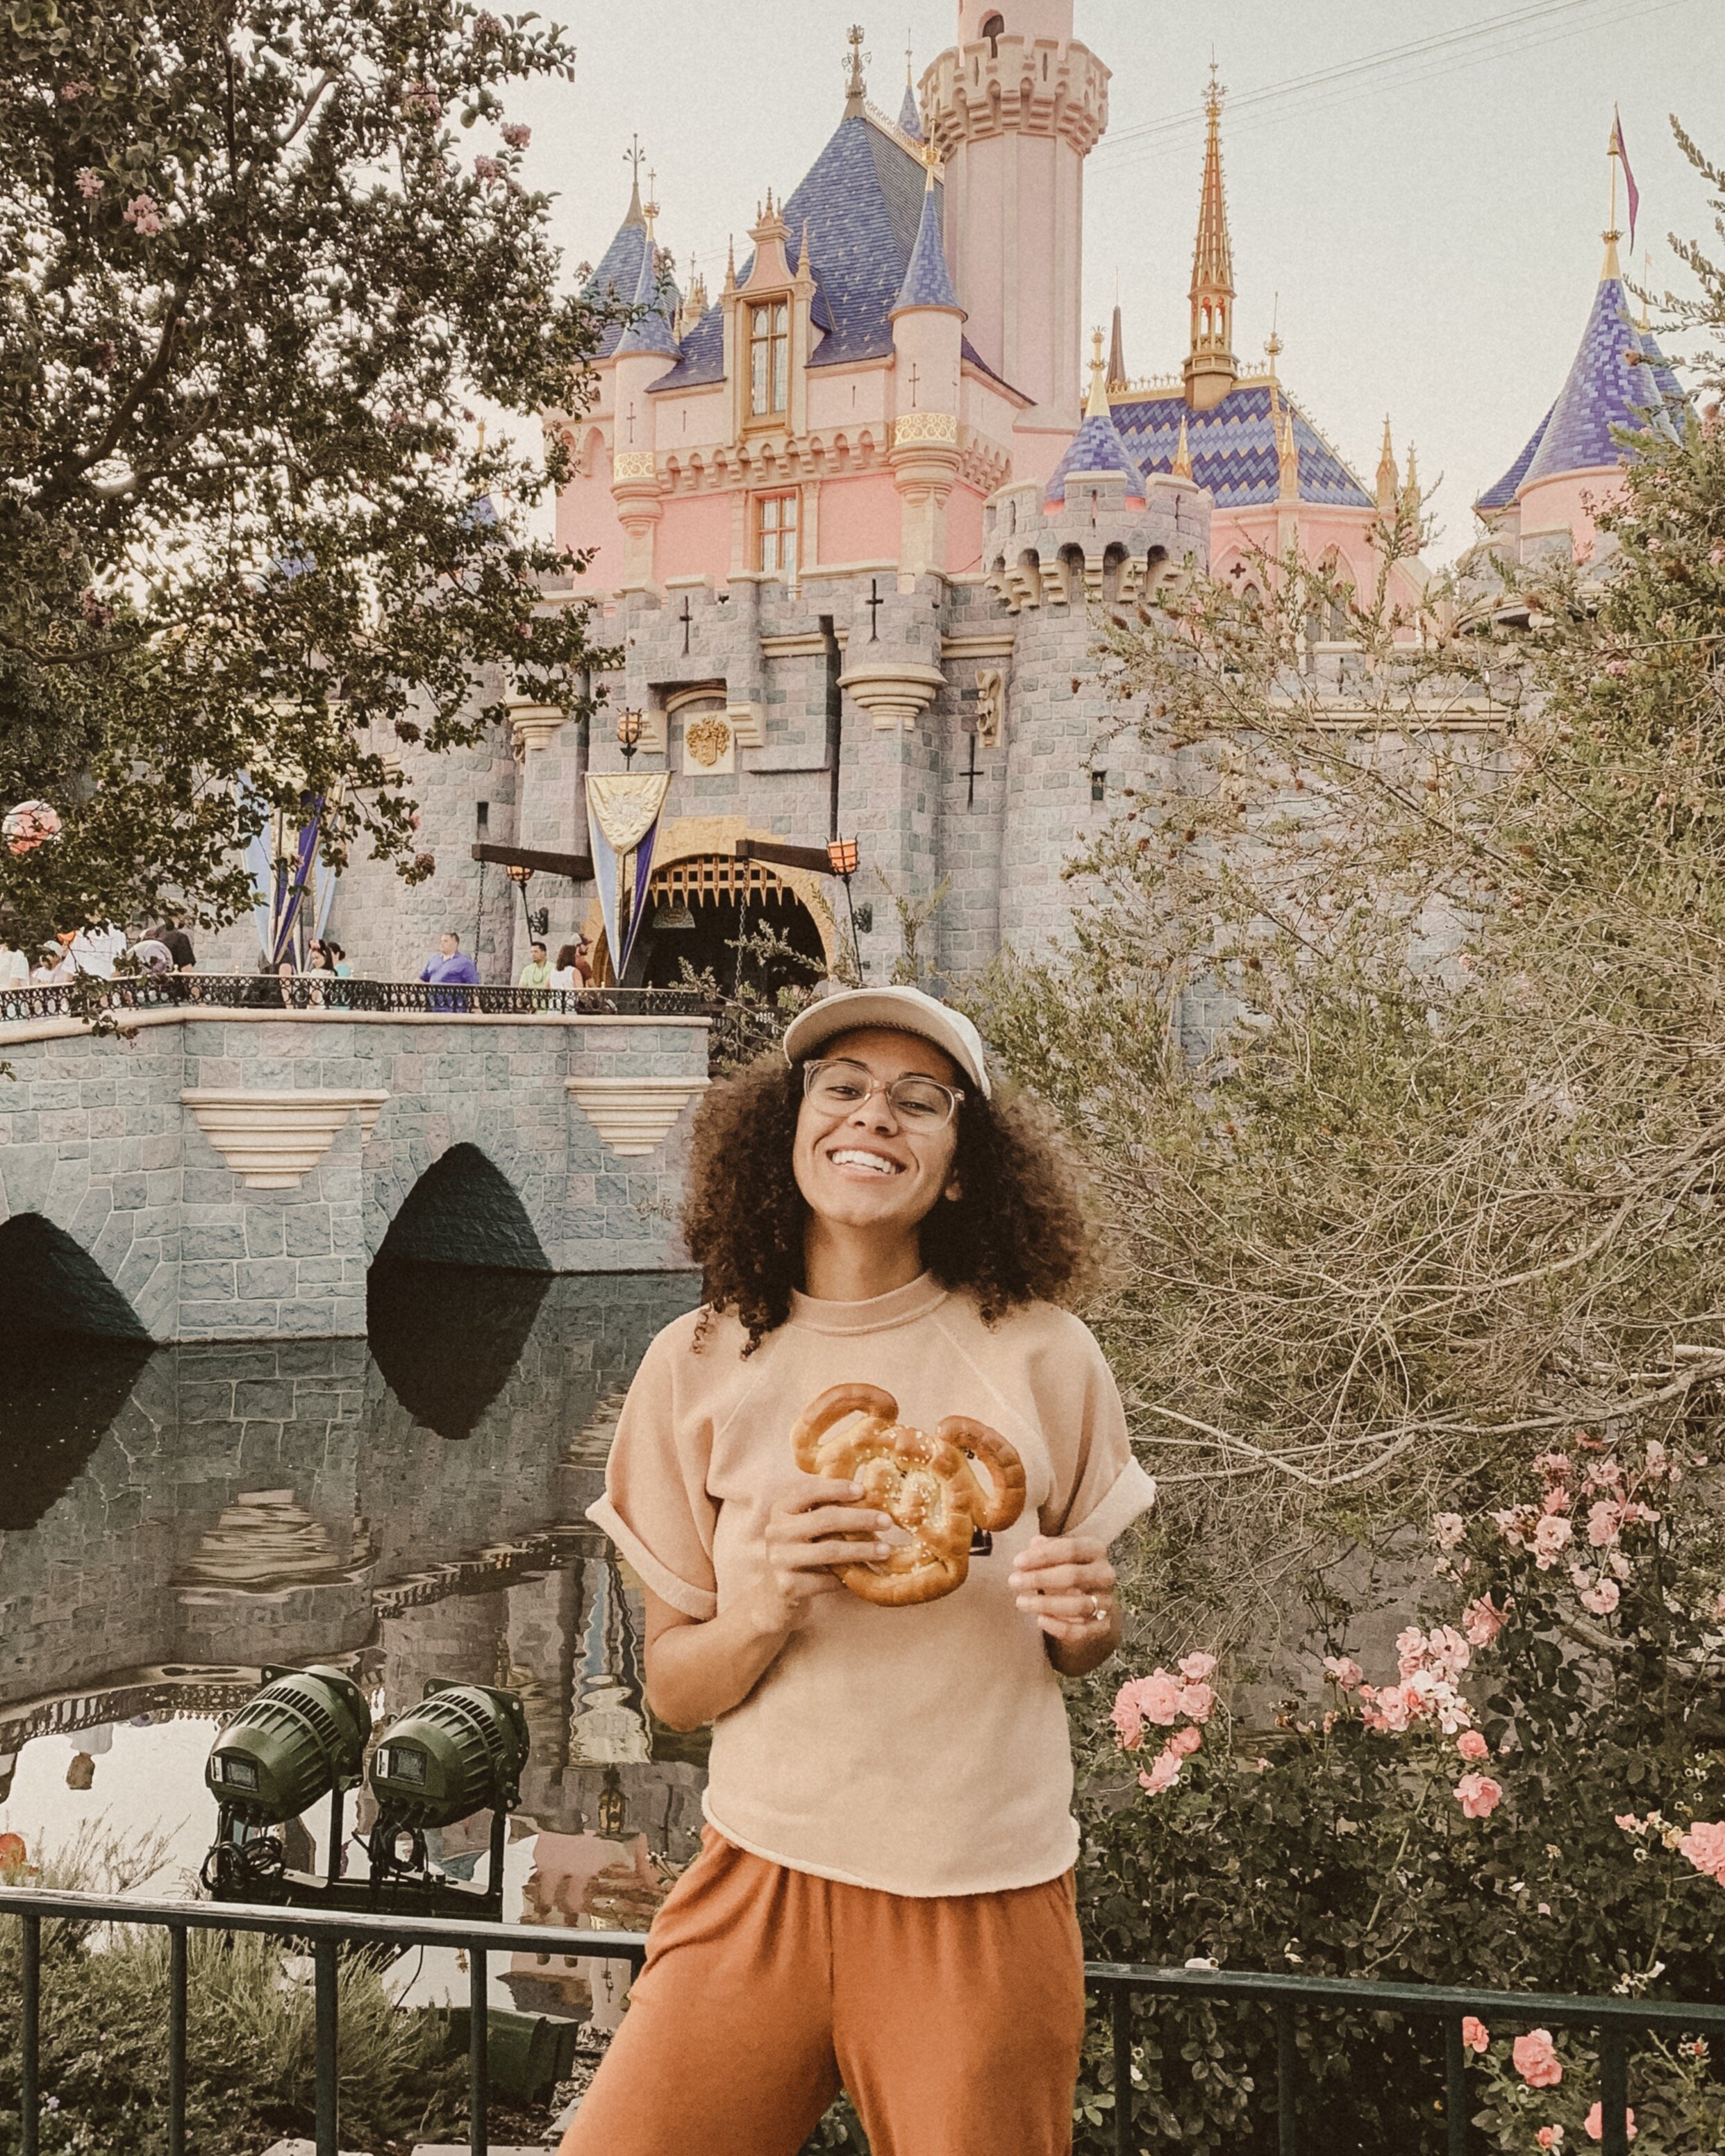 all in all, i was a very happy camper this disney trip and even had a small bite of a churro, despite it's lack of vegan-ness (shhh). i'm truly so thrilled to know that big empires like disneyland are realizing the diversity in lifestyle choices and are accommodating to all types of people. i hope this gave you some insight for your next disney adventure and if you stumble upon any more vegan goodness in the happiest place on earth, please let me know!